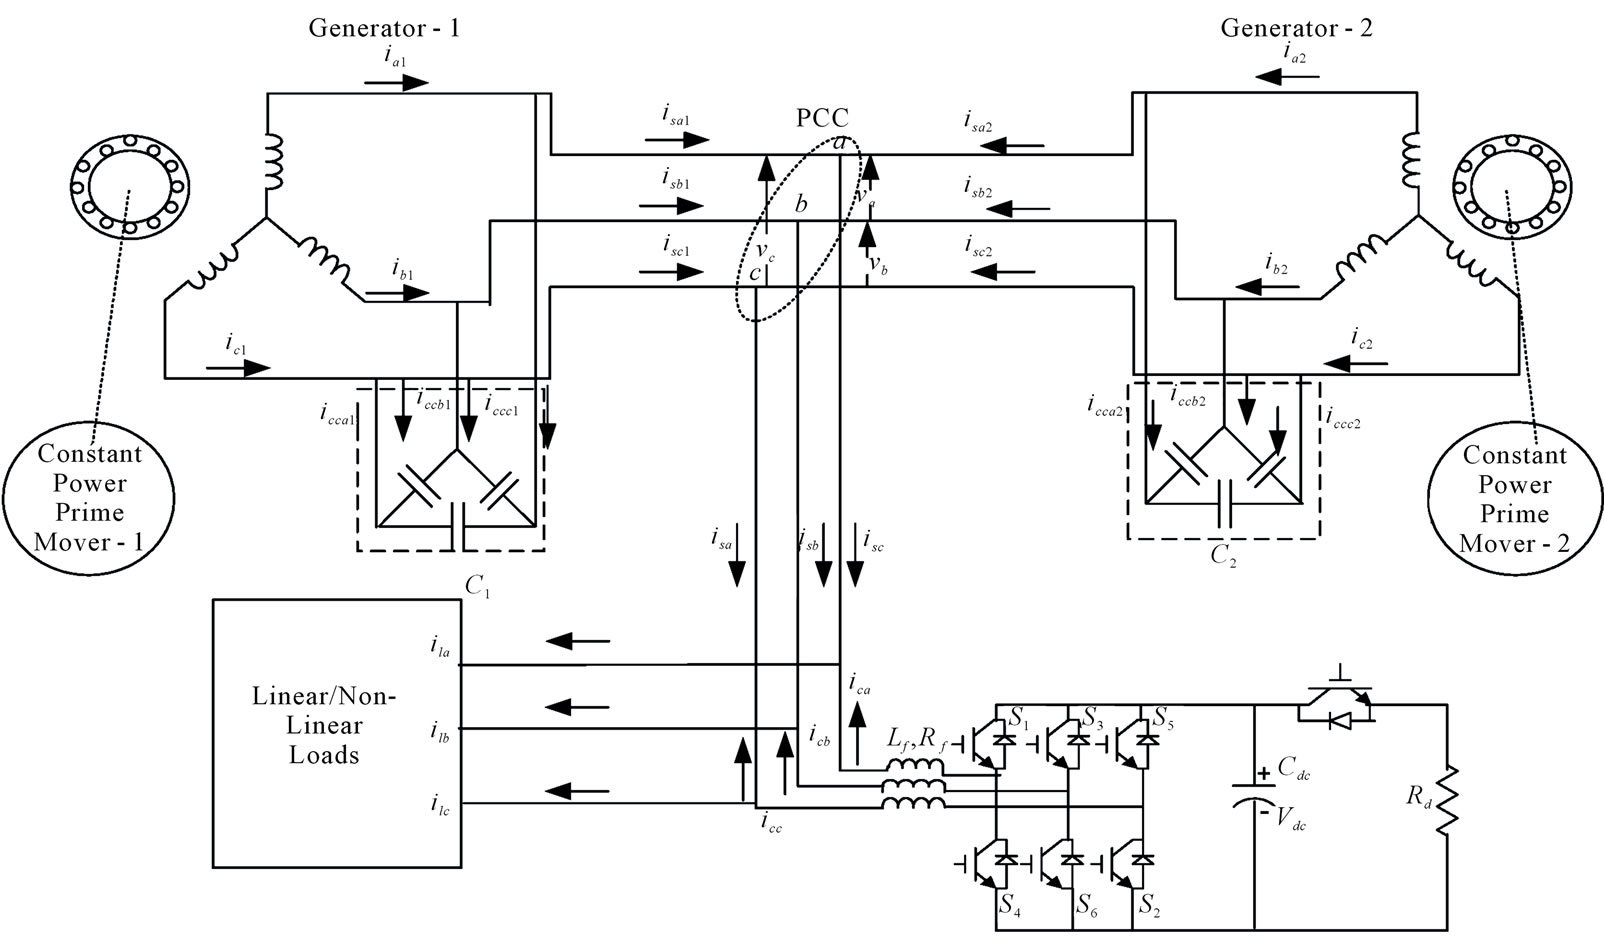 Electronic Load Controller For A Parallel Operated